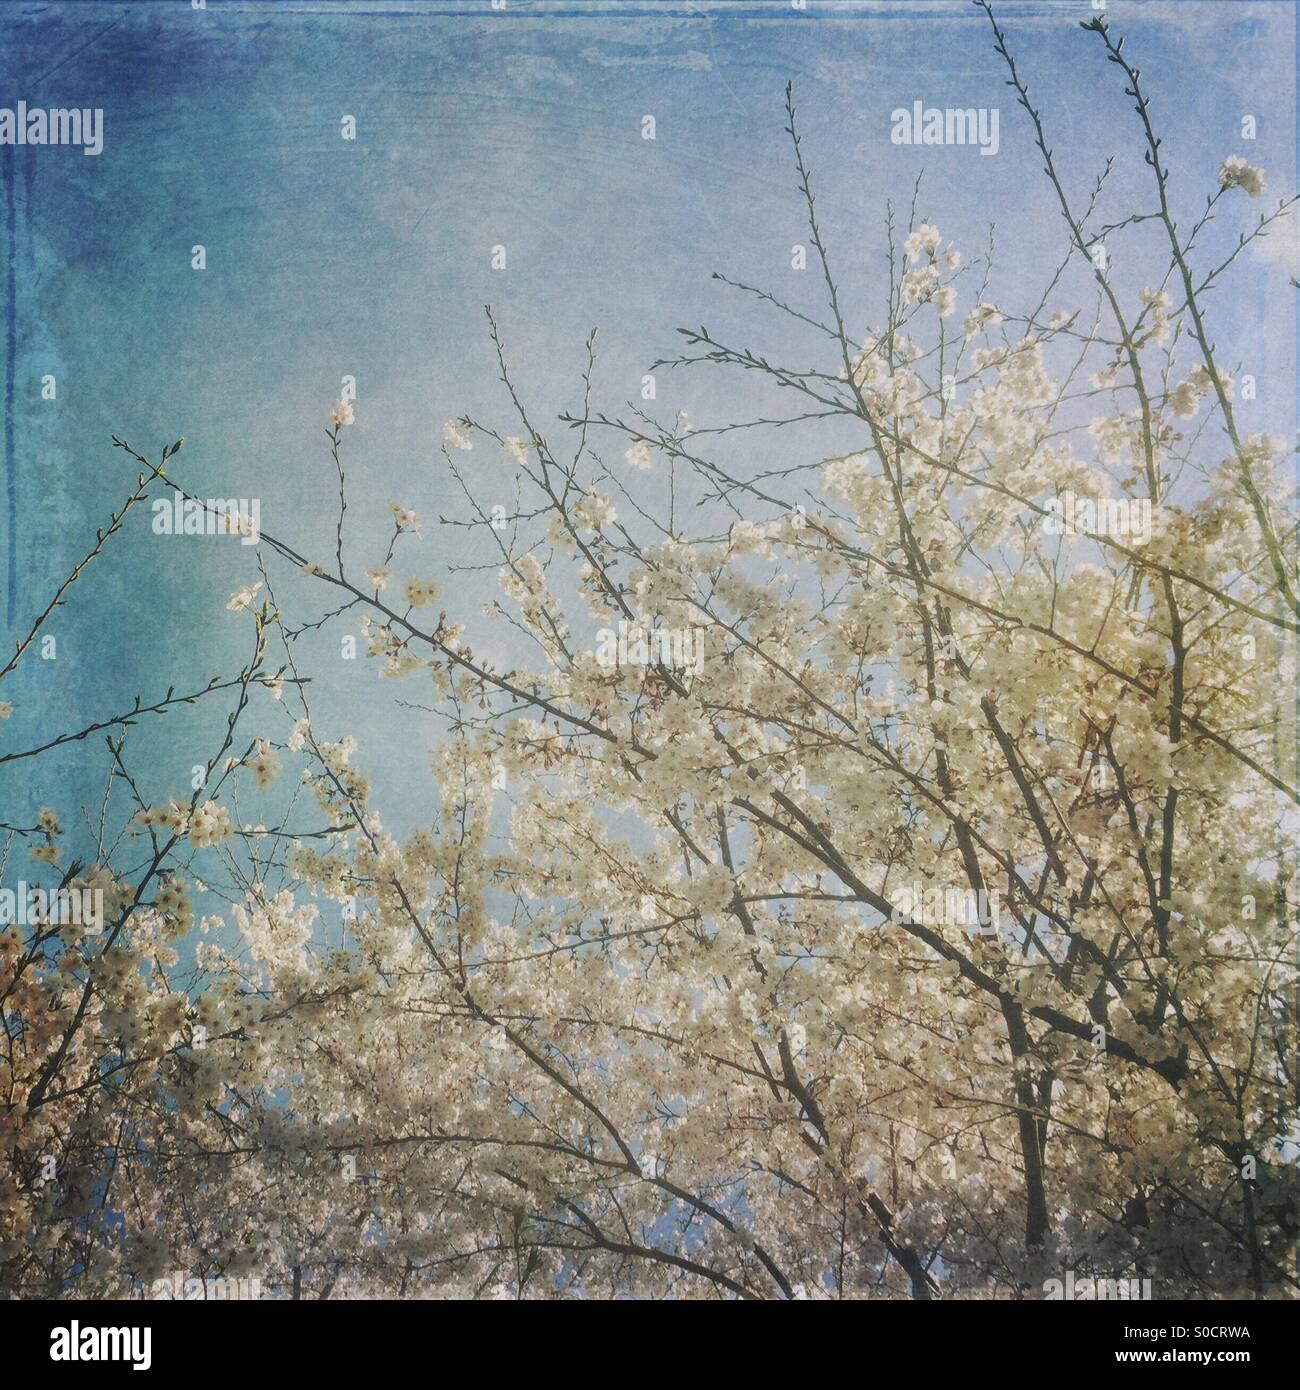 Beautiful white sakura or cherry blossoms in Spring, with vintage, painterly texture overlay. - Stock Image